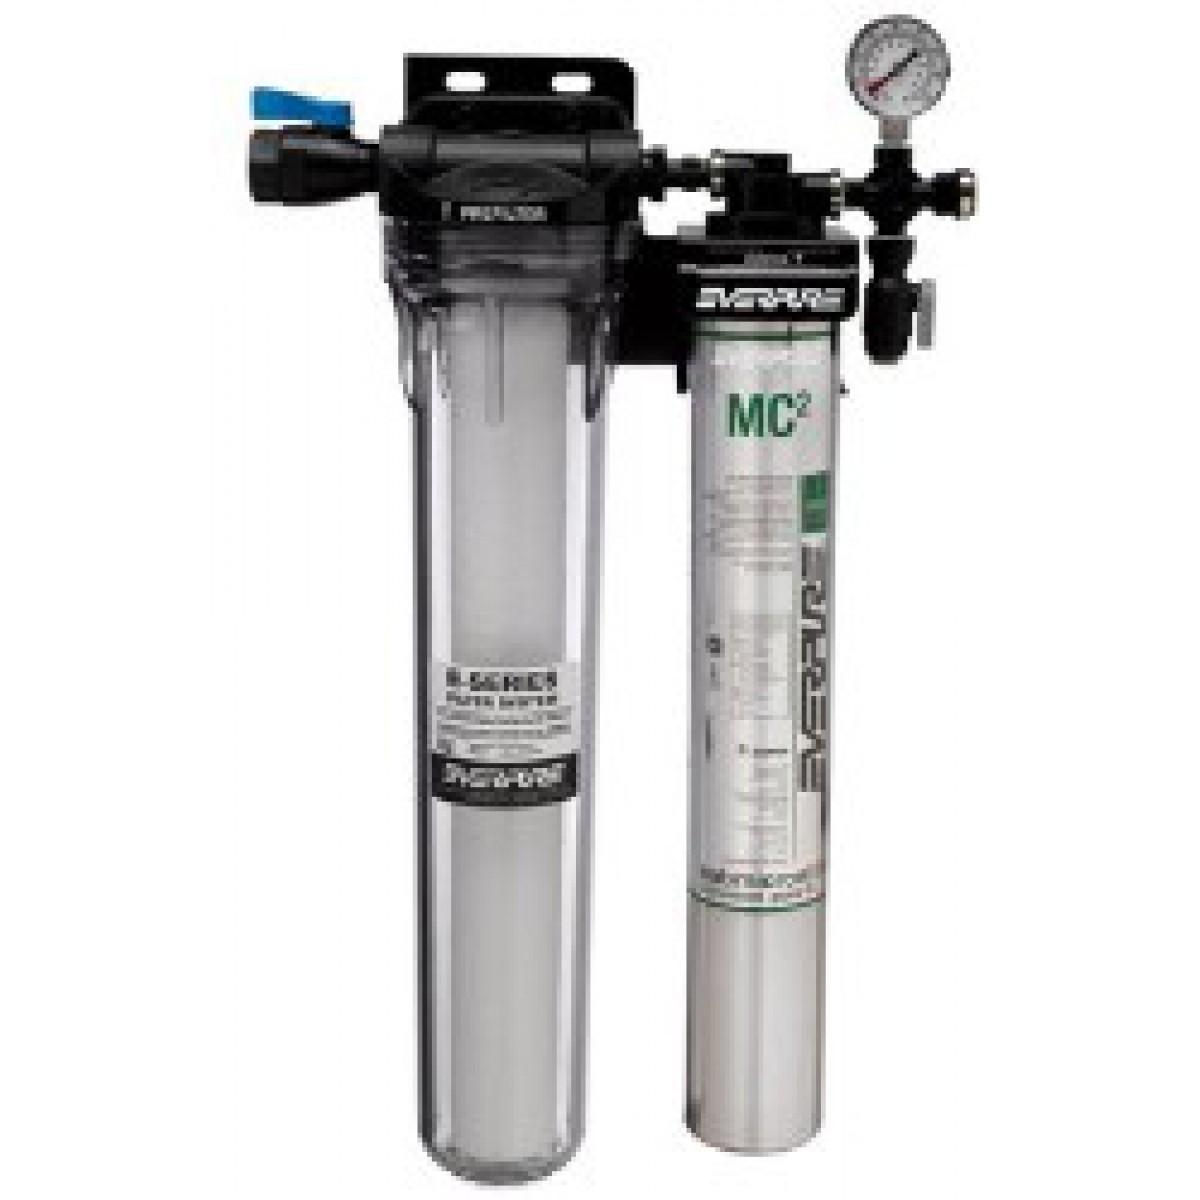 Everpure ev9328 01 coldrink 1 mc 2 system for Everpure water filter system reviews